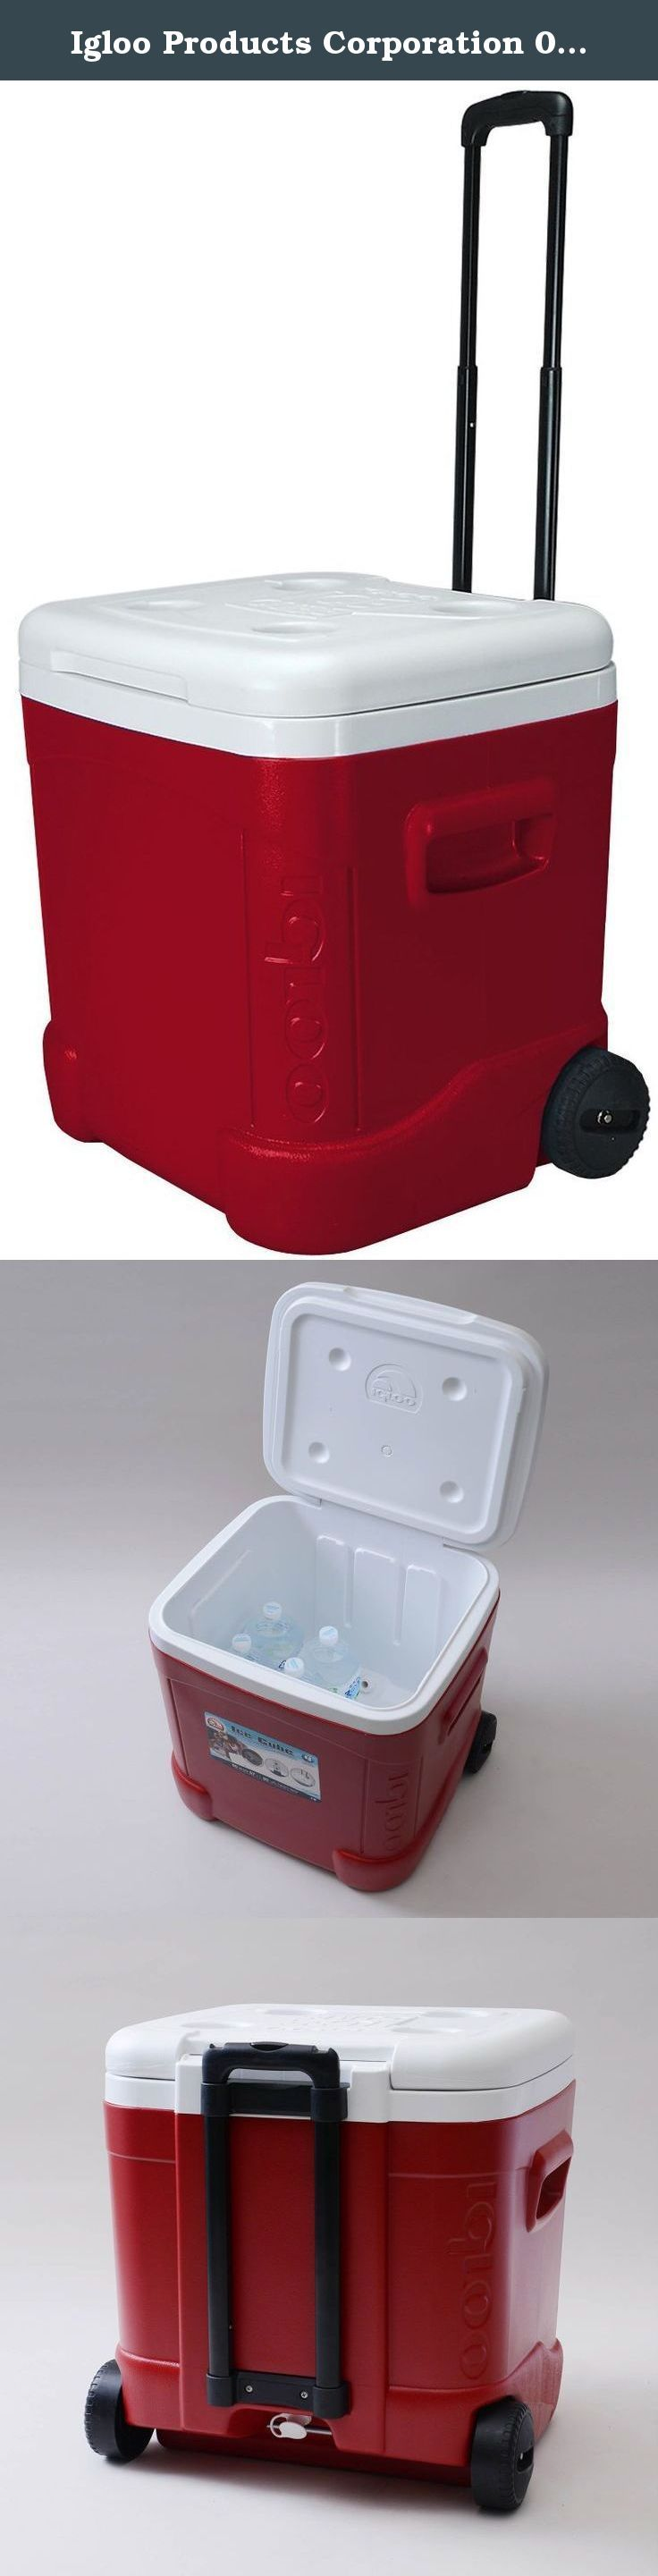 Igloo Products Corporation 00045688 Ice Cube Roller Cooler, 60 quart, Red. The first cube-shaped cooler on the market - now on wheels! It's ergonomically easier to lift and carry, because your arms are held closer to your body. Ideal size for food and drinks for friends, family, team sports, tailgating or other group events.